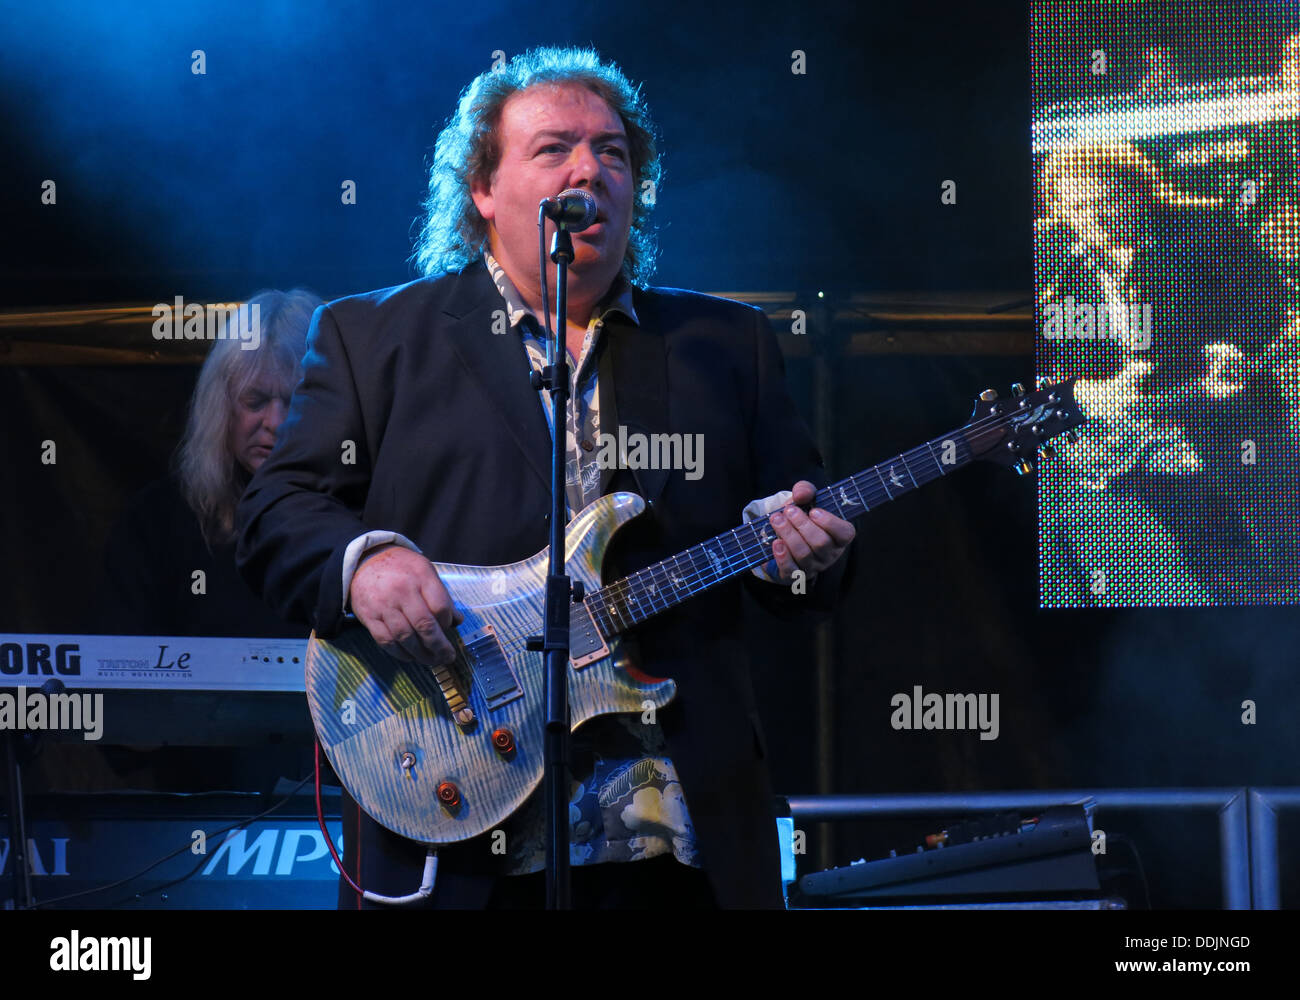 Bernie Marsden of Whitesnake at Silverstone 2013 British GP Grand Prix Woodlands stage with his guitar - Stock Image